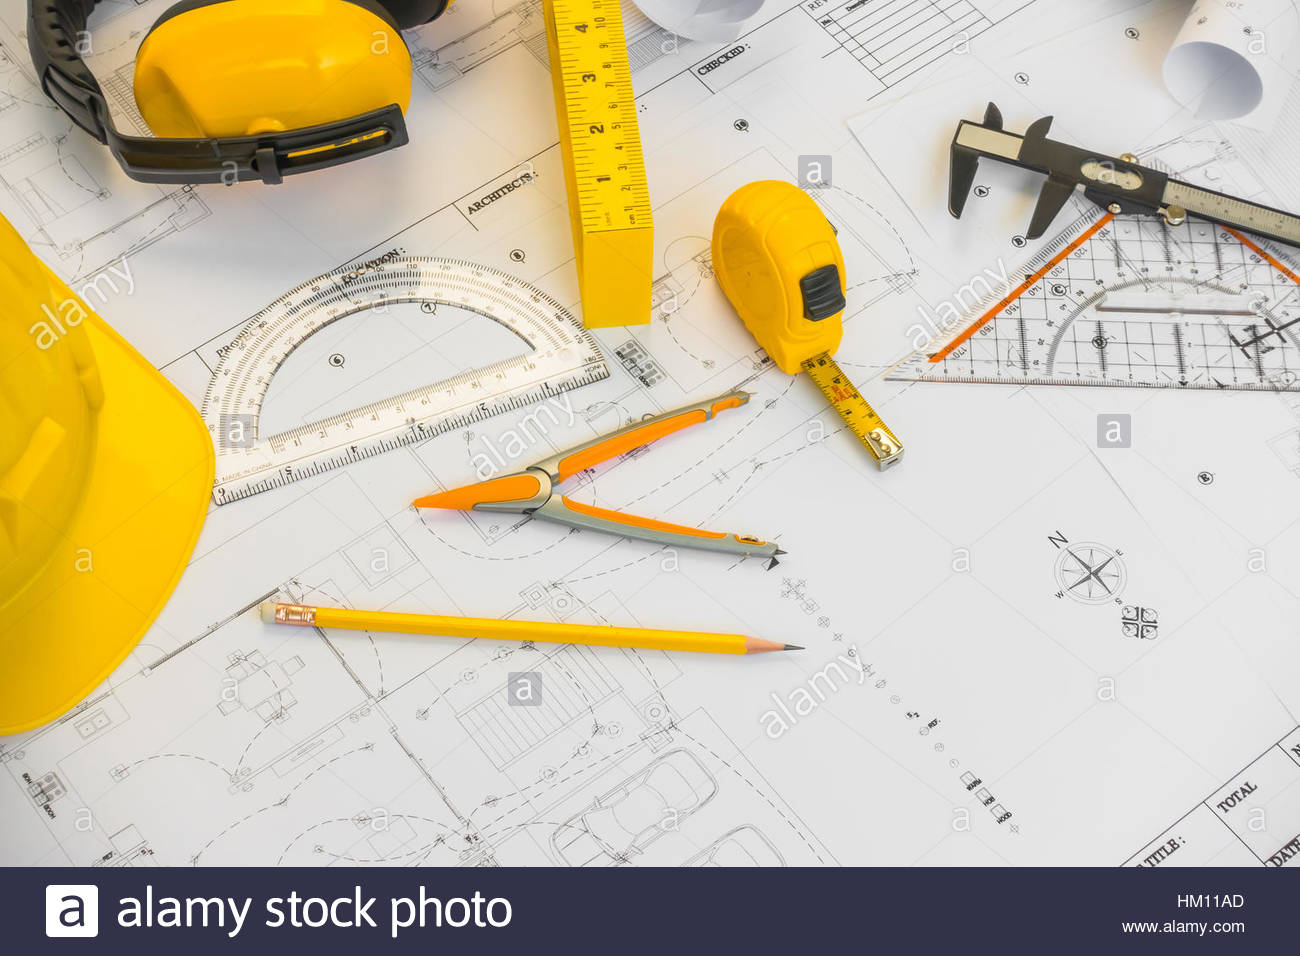 1300x956 Construction Plans With Yellow Helmet And Drawing Tools